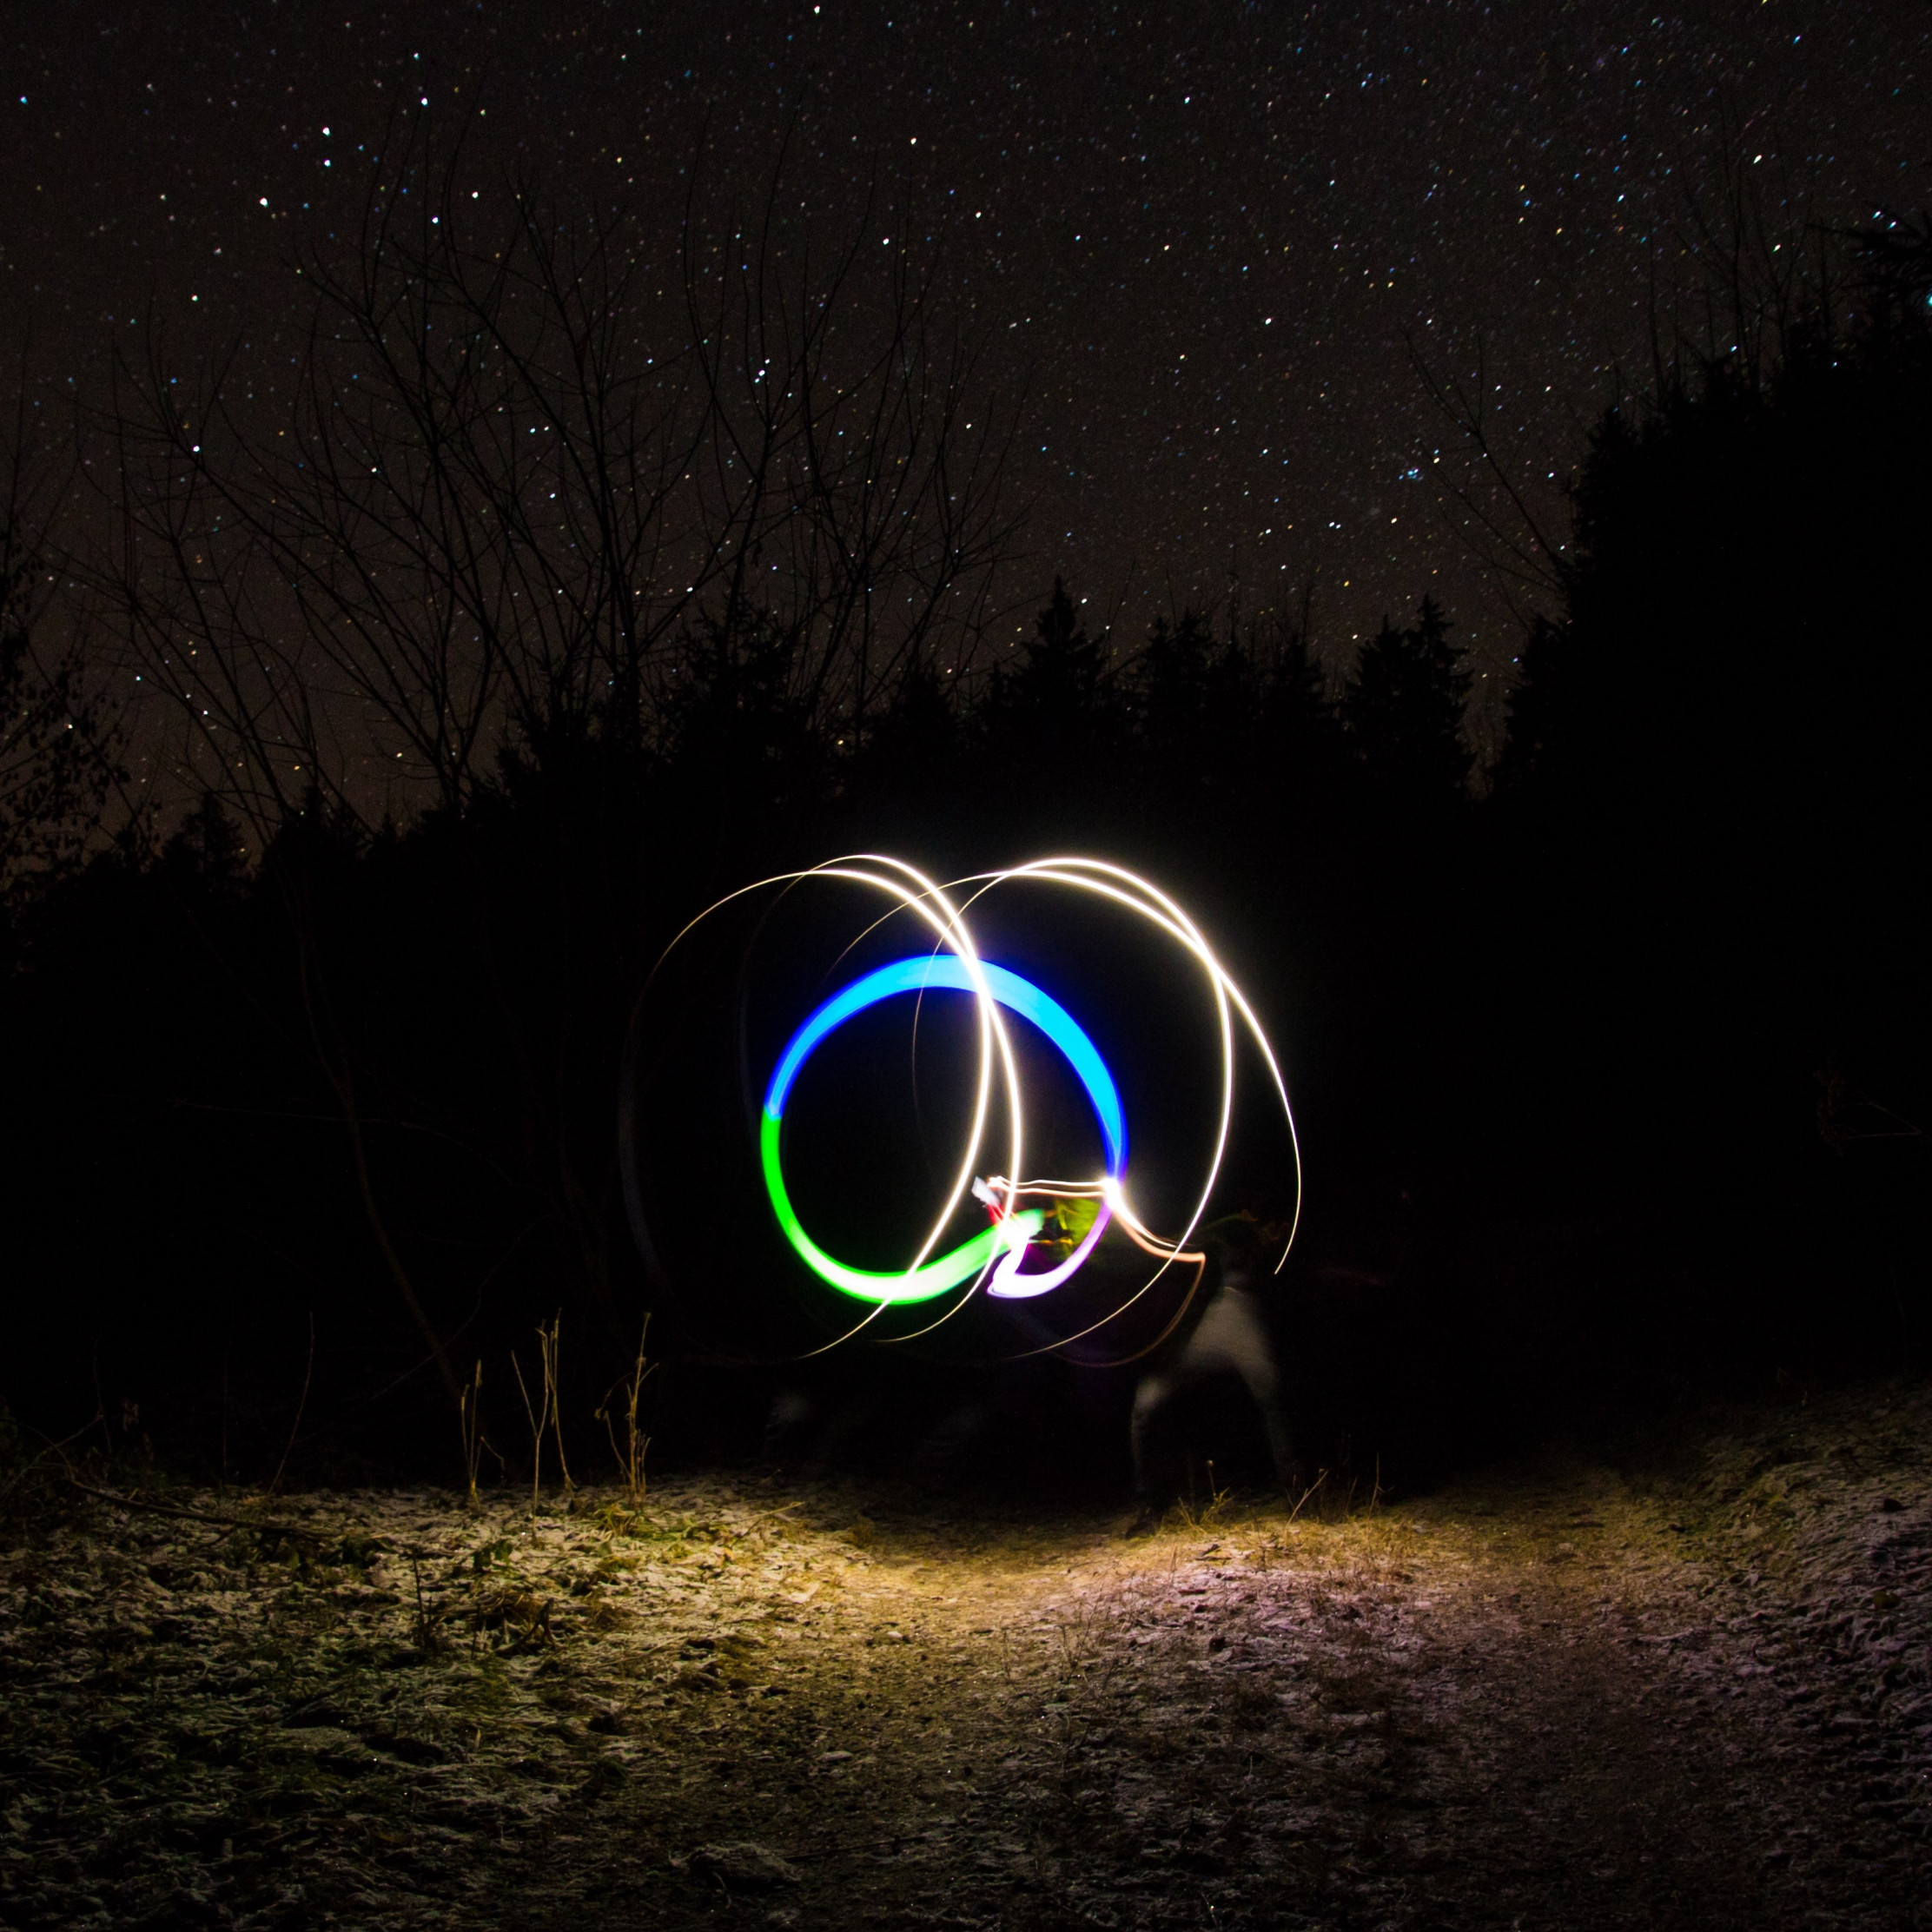 Light graffiti and the sky full of stars wallpaper 2224x2224